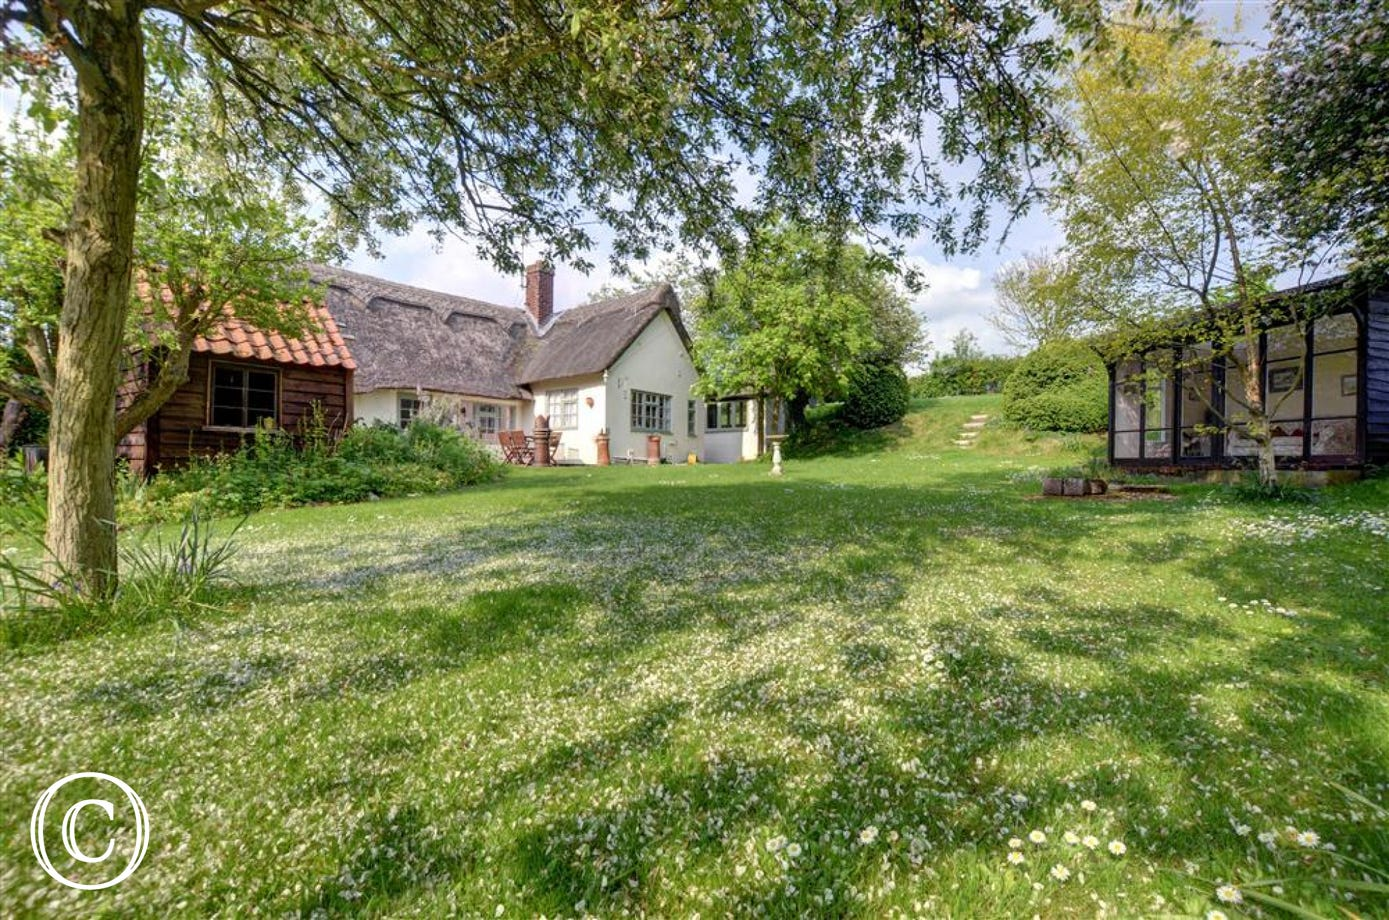 This pretty post card property is situated in the quiet village of Denston not too far from historic Bury St Edmunds.